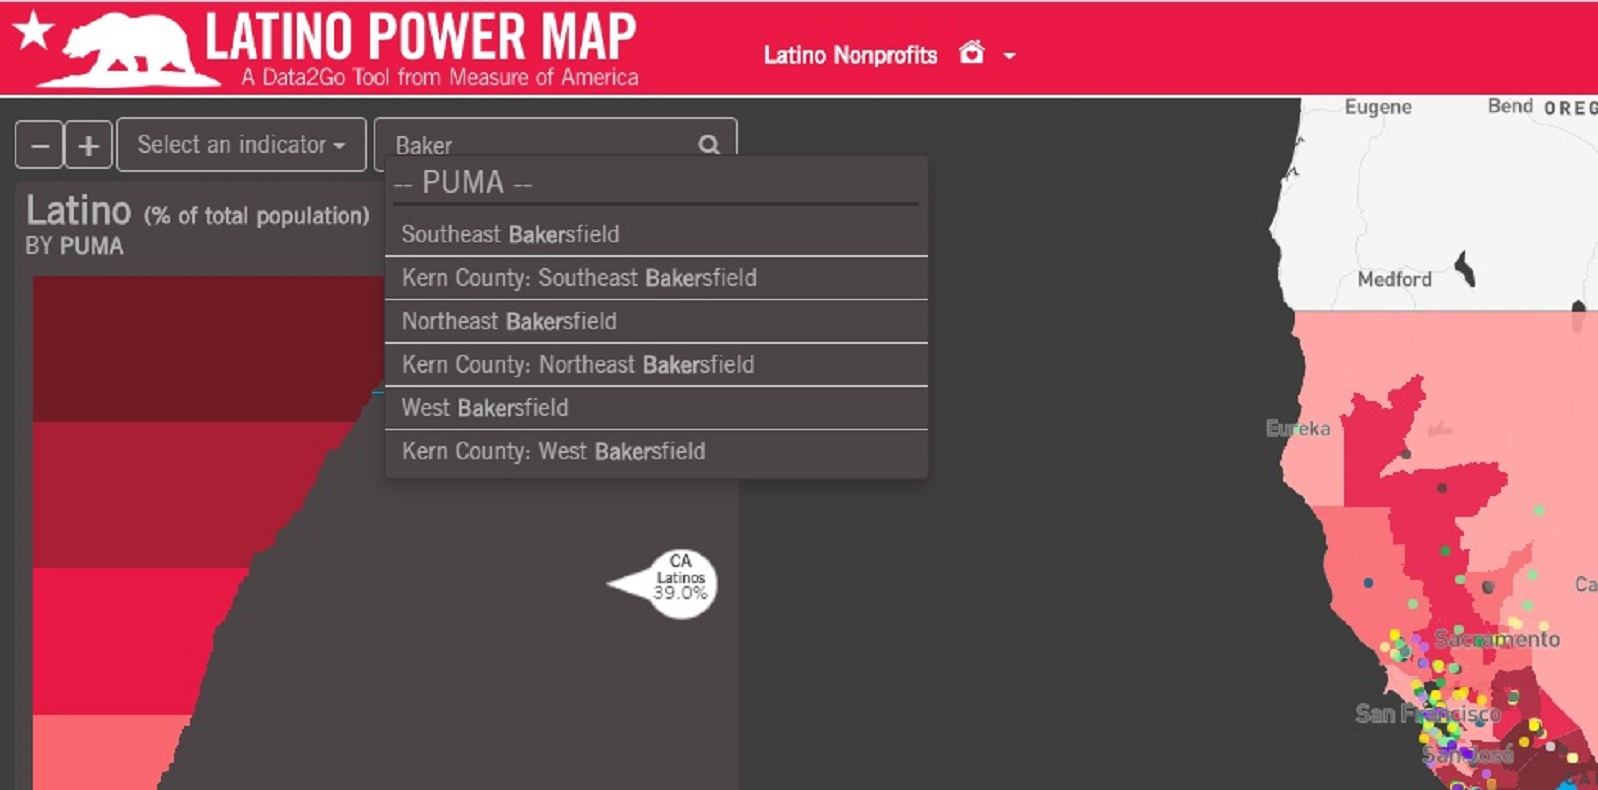 California Latino Power Map's Type-ahead Search Functionality